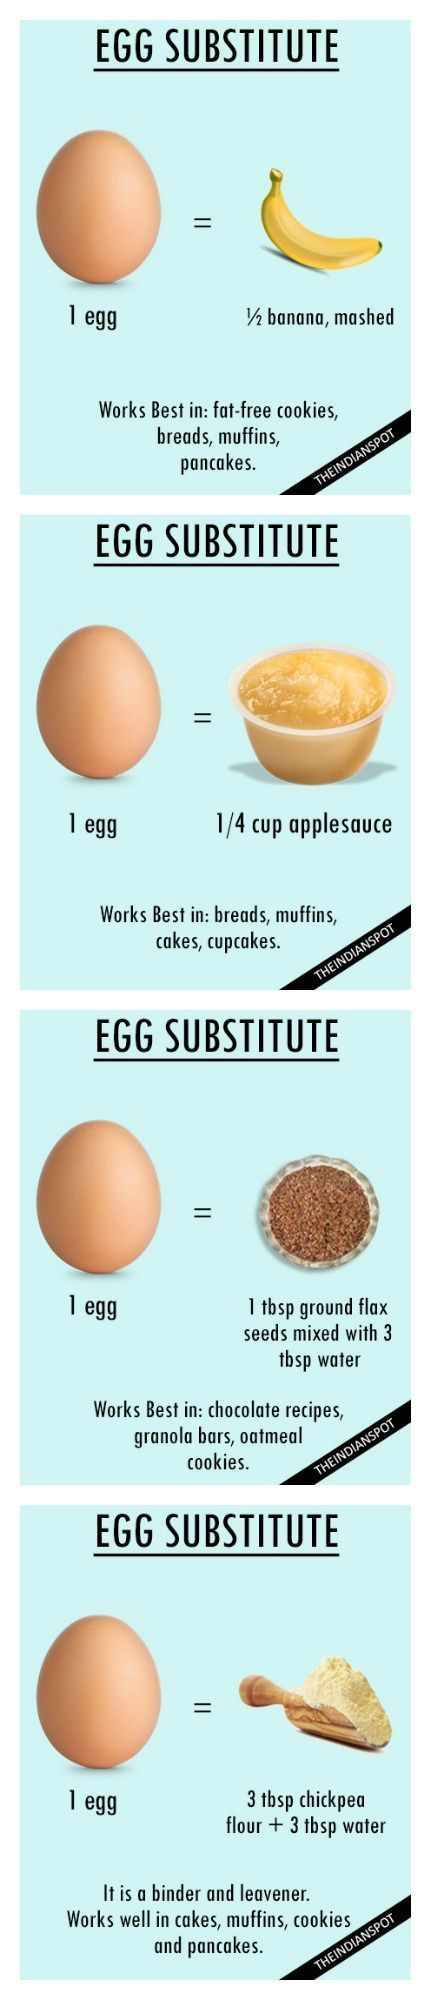 VEGAN BAKING WITHOUT EGGS – BEST SUBSTITUTES FOR EGGS IN BAKING (Baking Eggs In Bread)